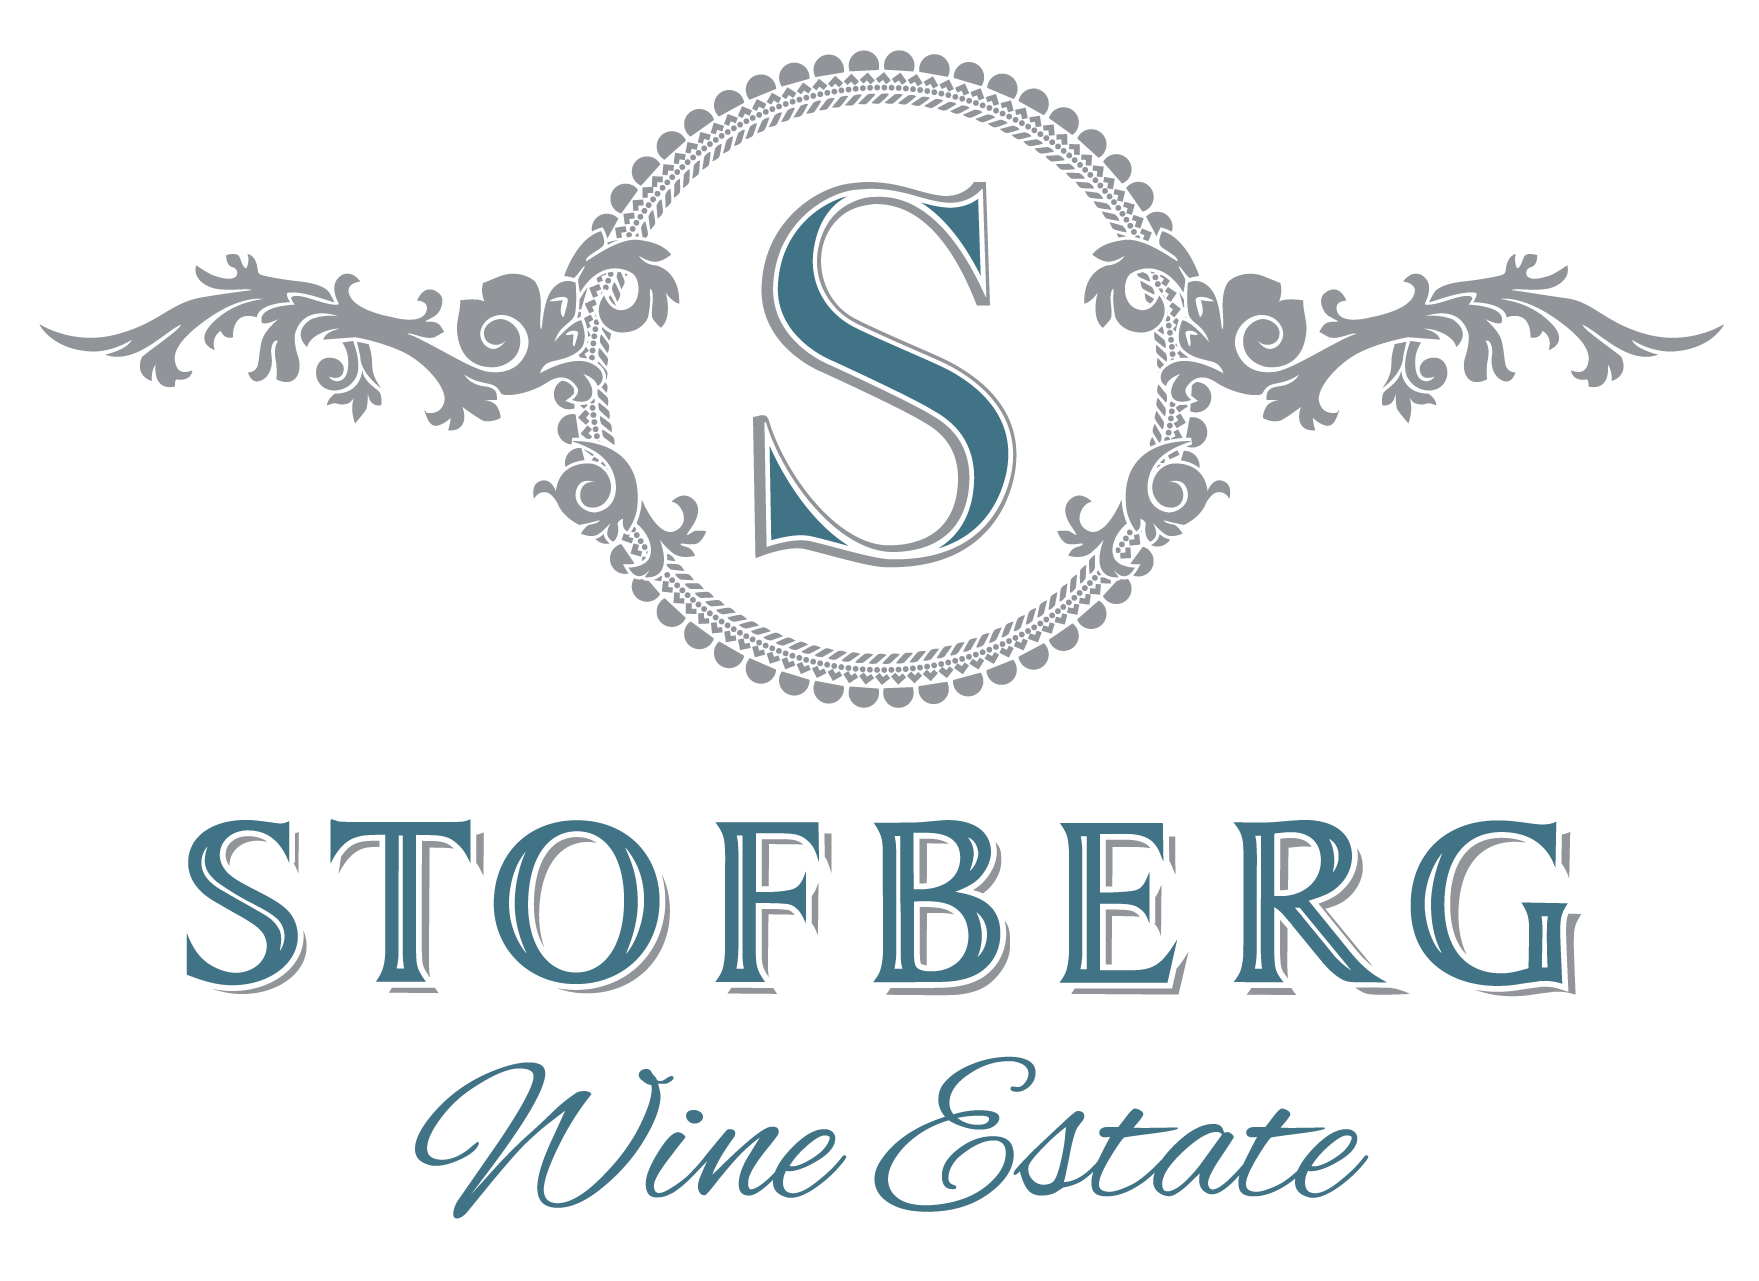 Stofberg Wines